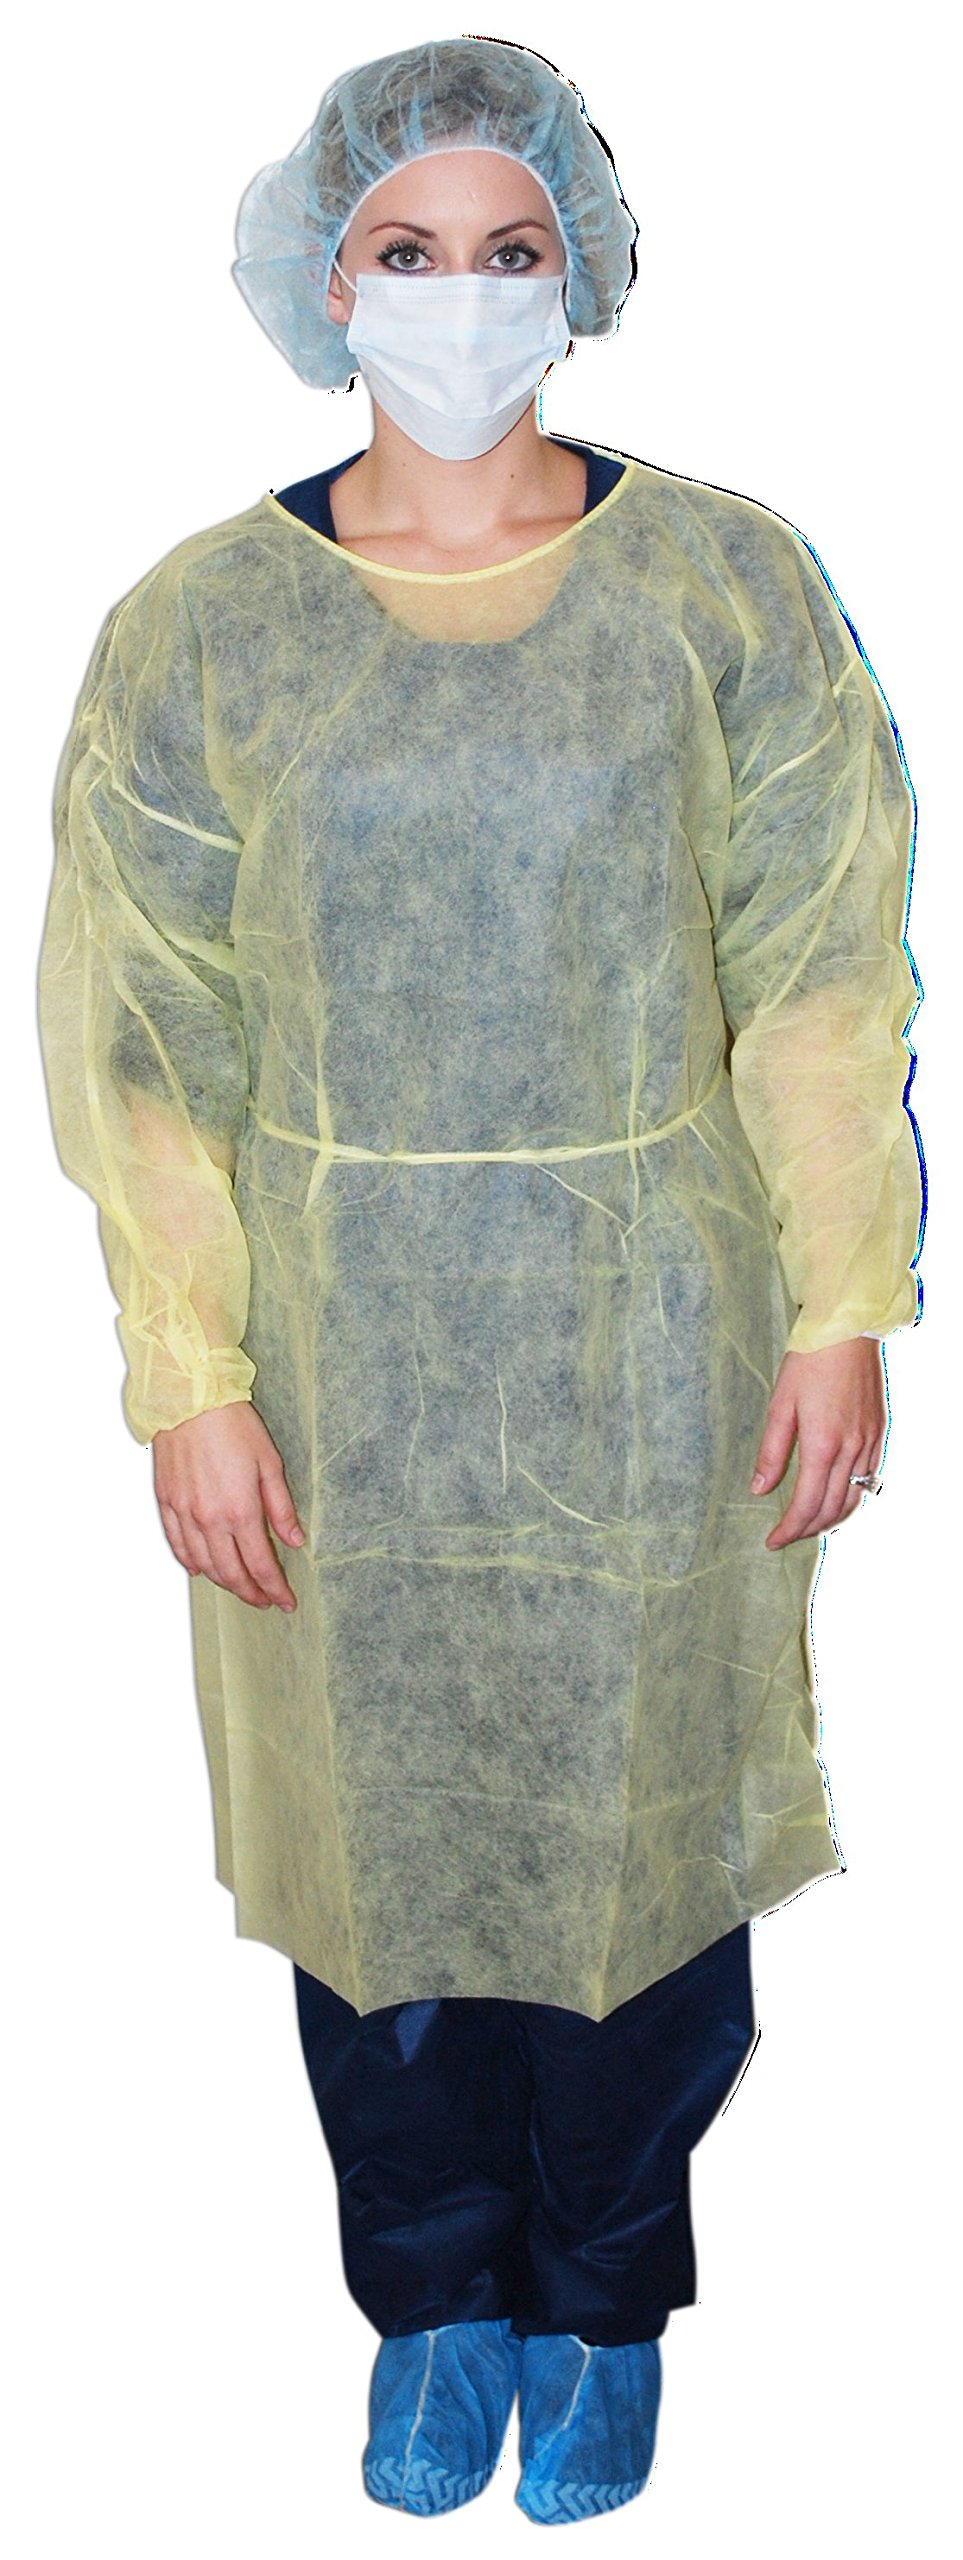 DUKAL 301XL Extra Large Isolation Gown, Yellow, Non-sterile